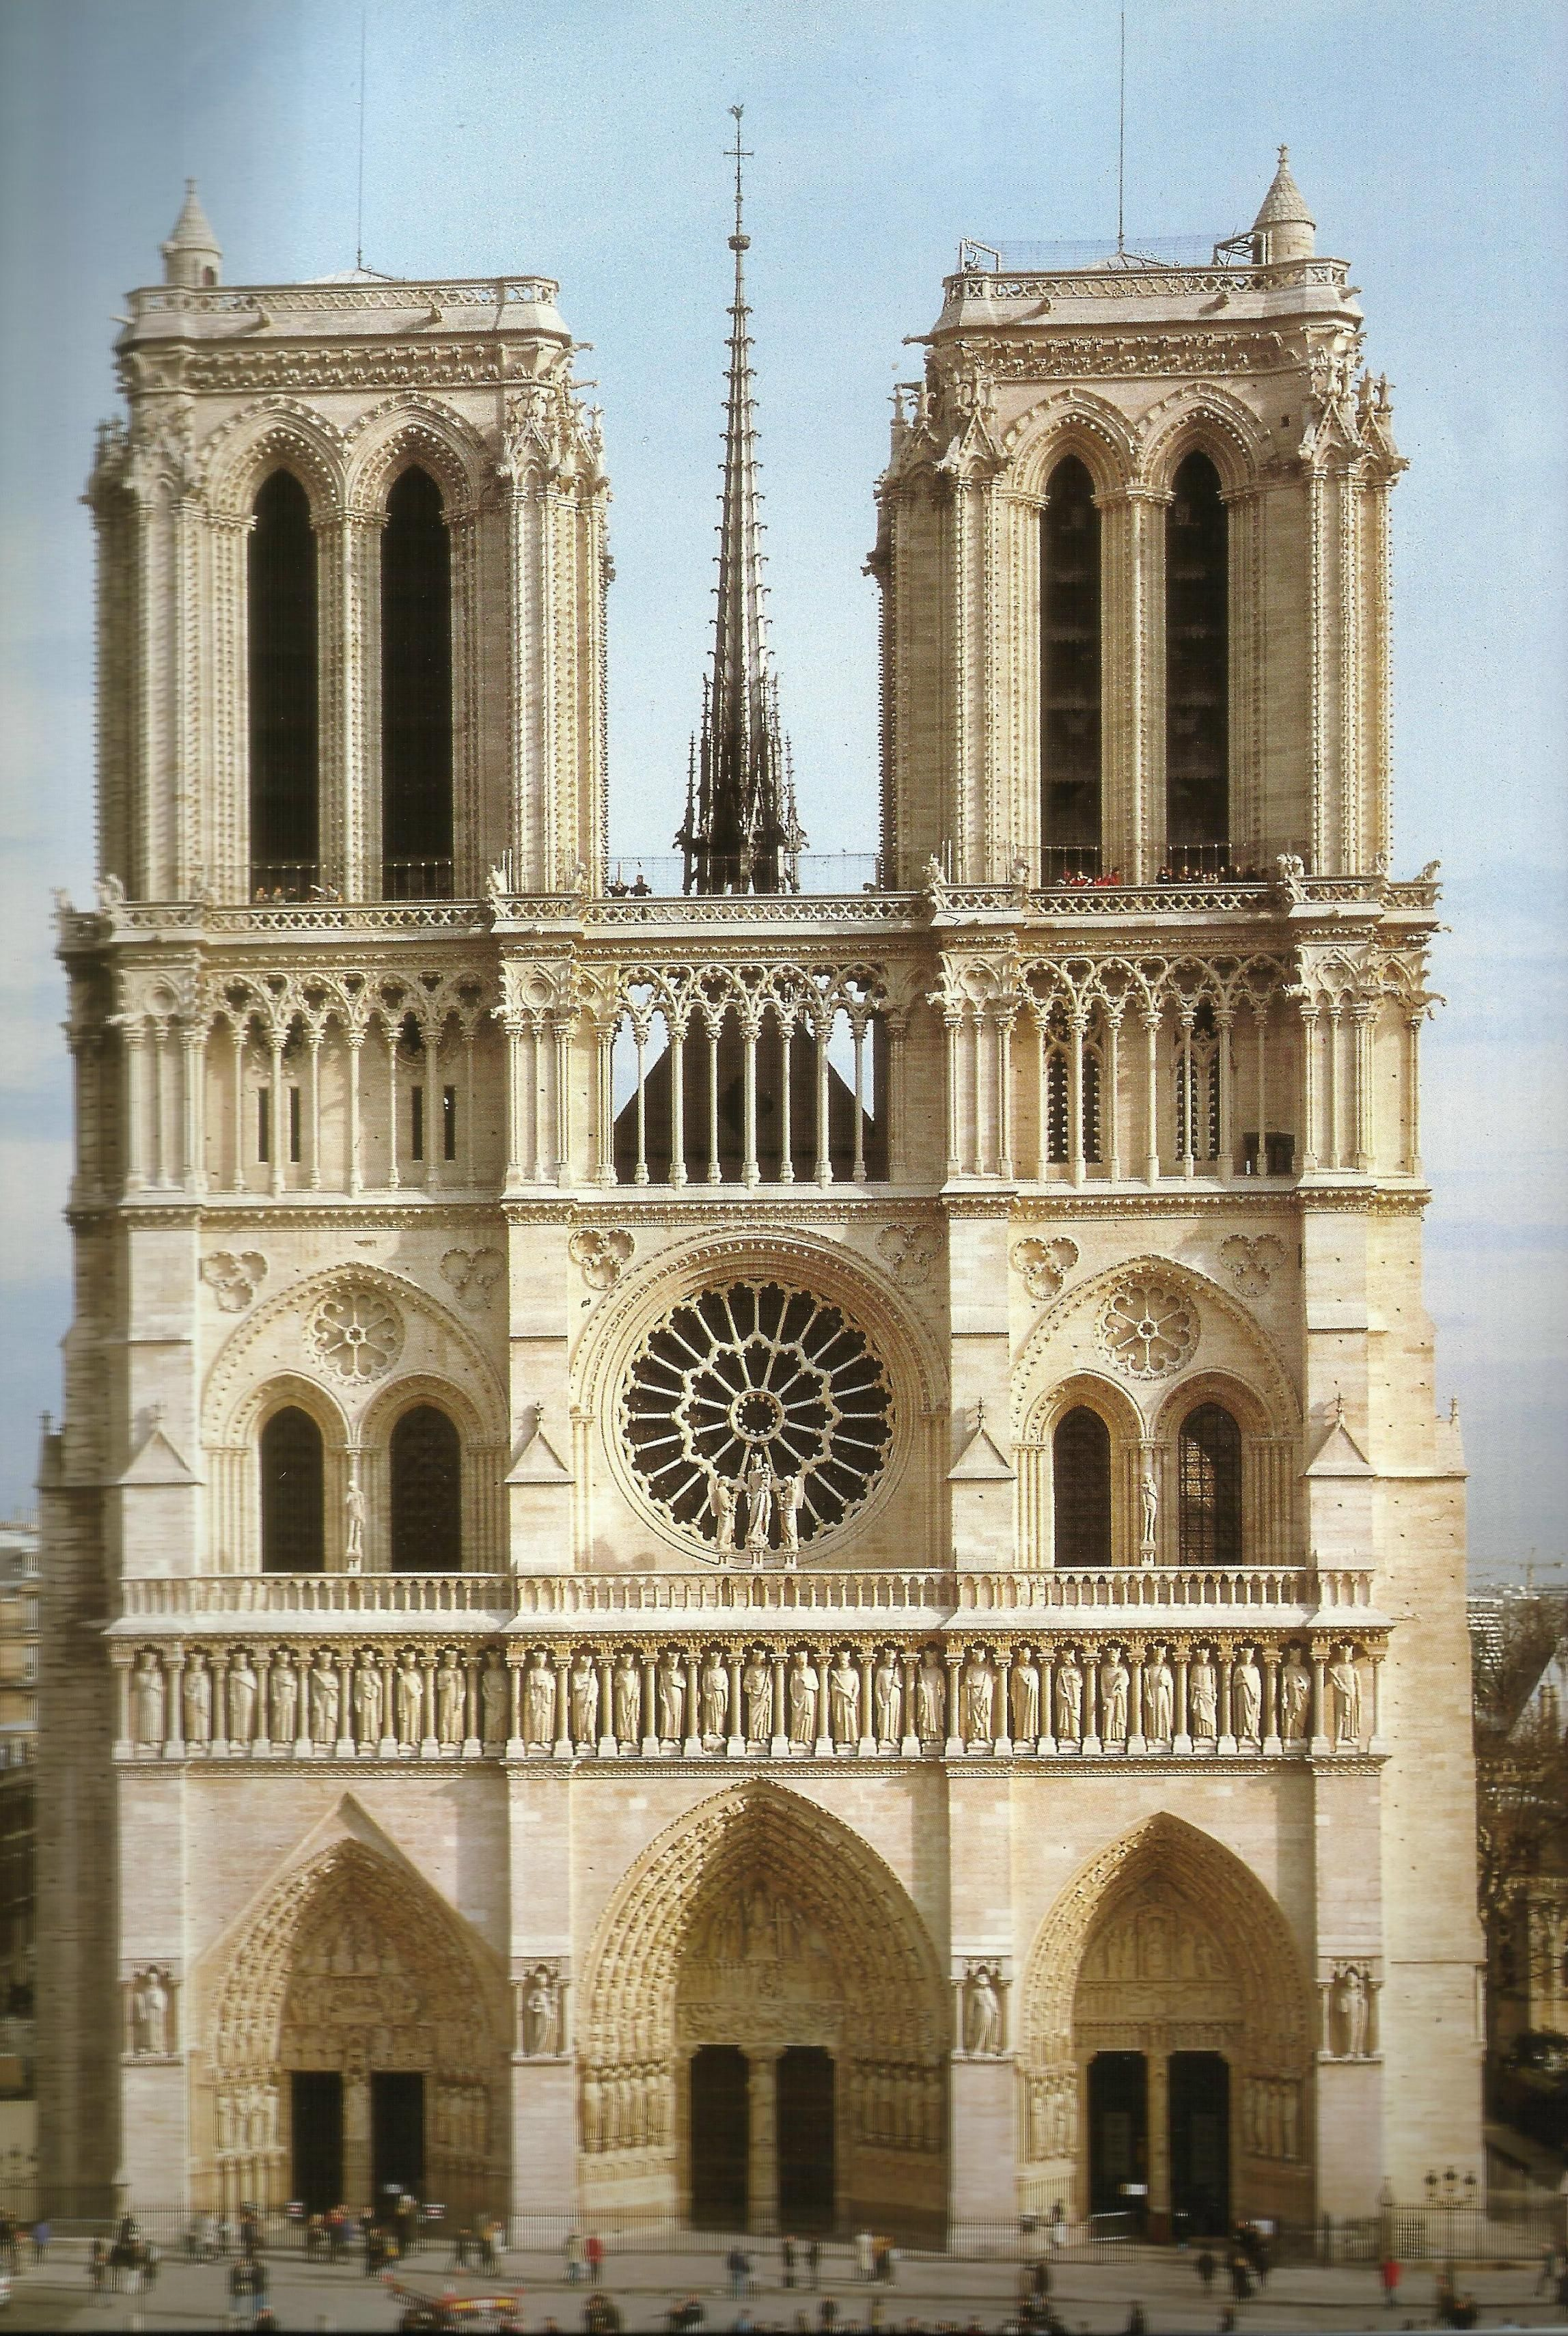 Notre Dame Cathedral Paris West Facade Ancient Roman Architecture French Gothic Architecture French Architecture